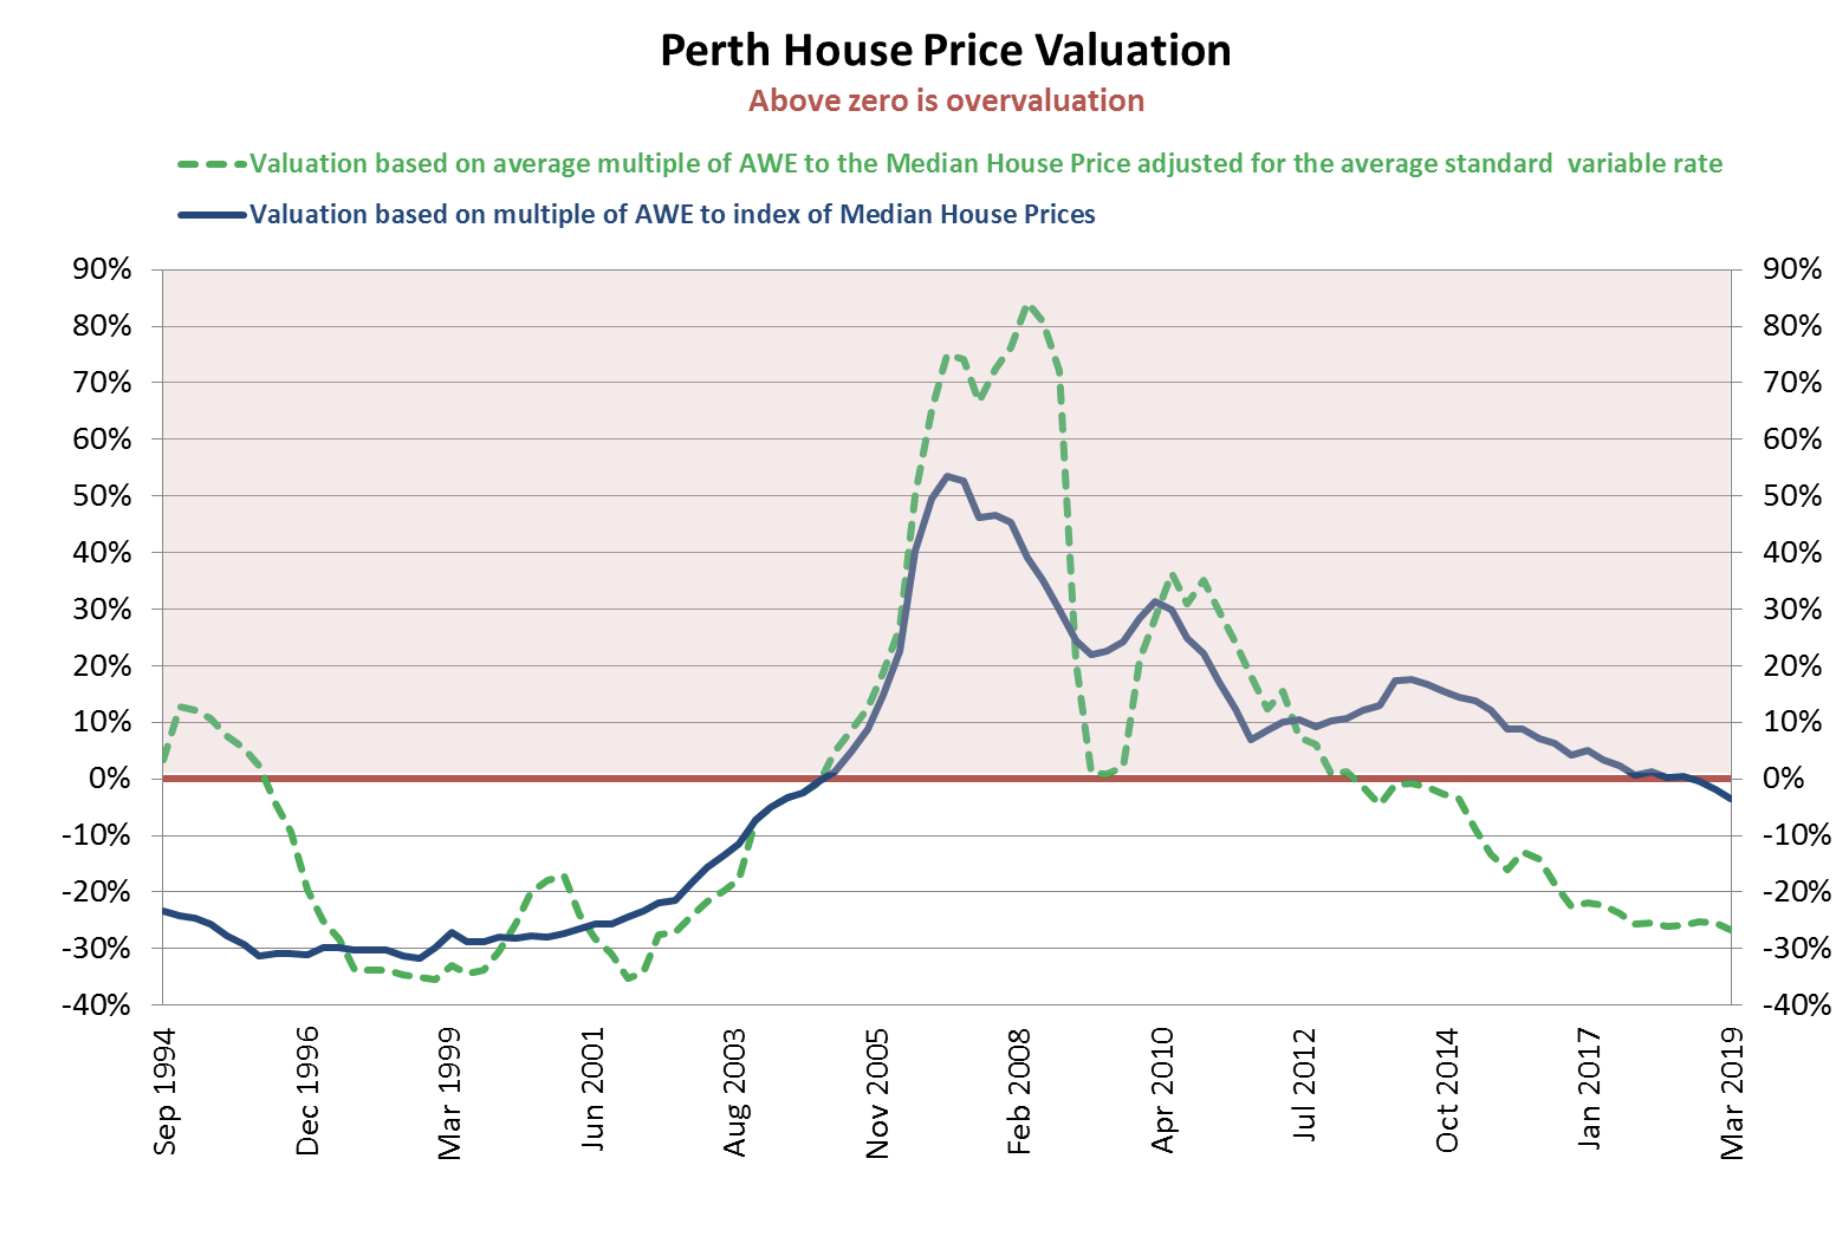 Sydney Melbourne House Prices Lead The Race Downwards In